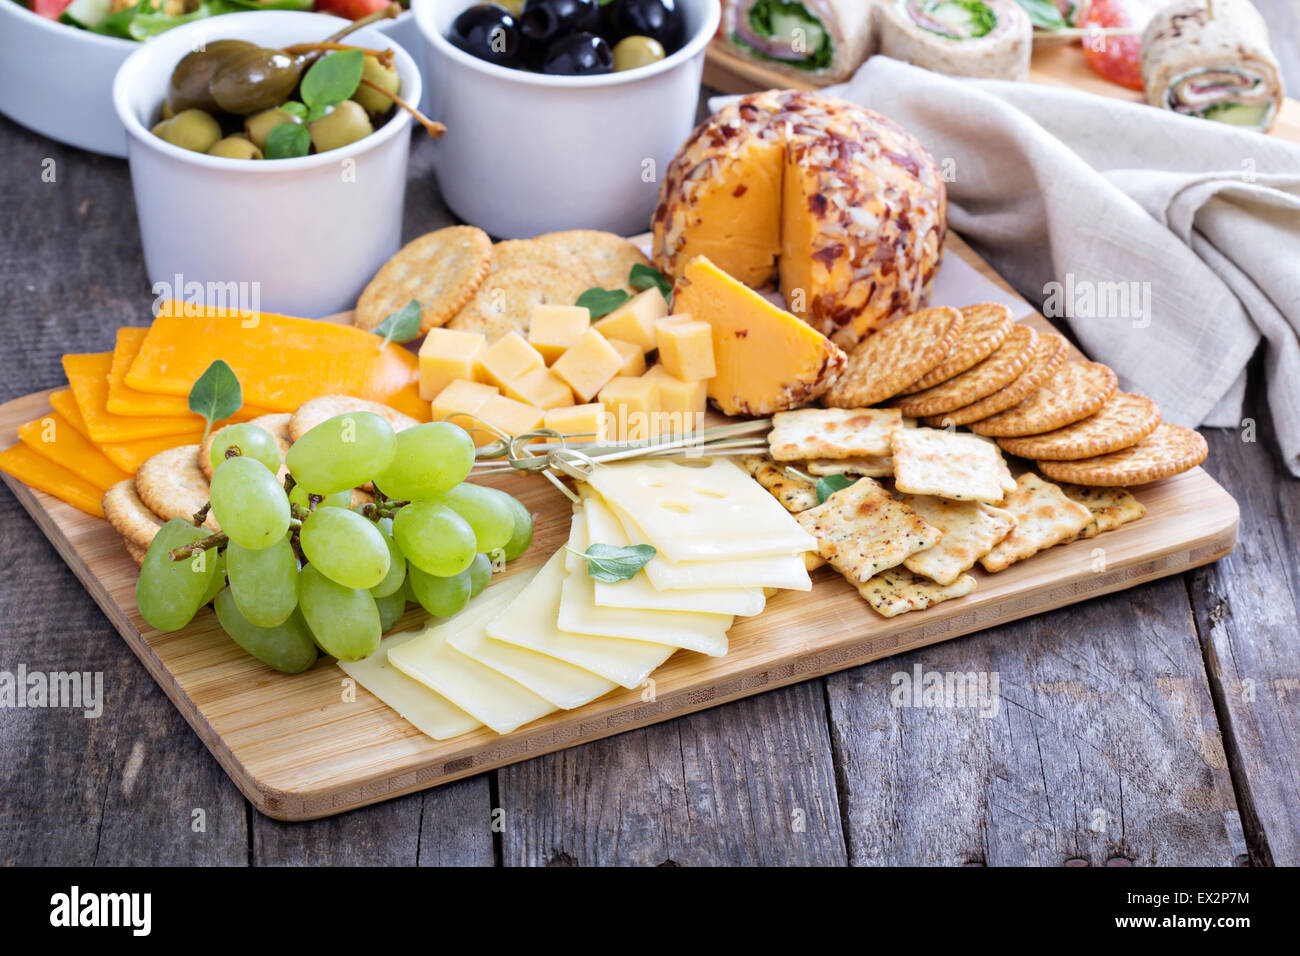 Cheese plate with variety of appetizers on table - Stock Image